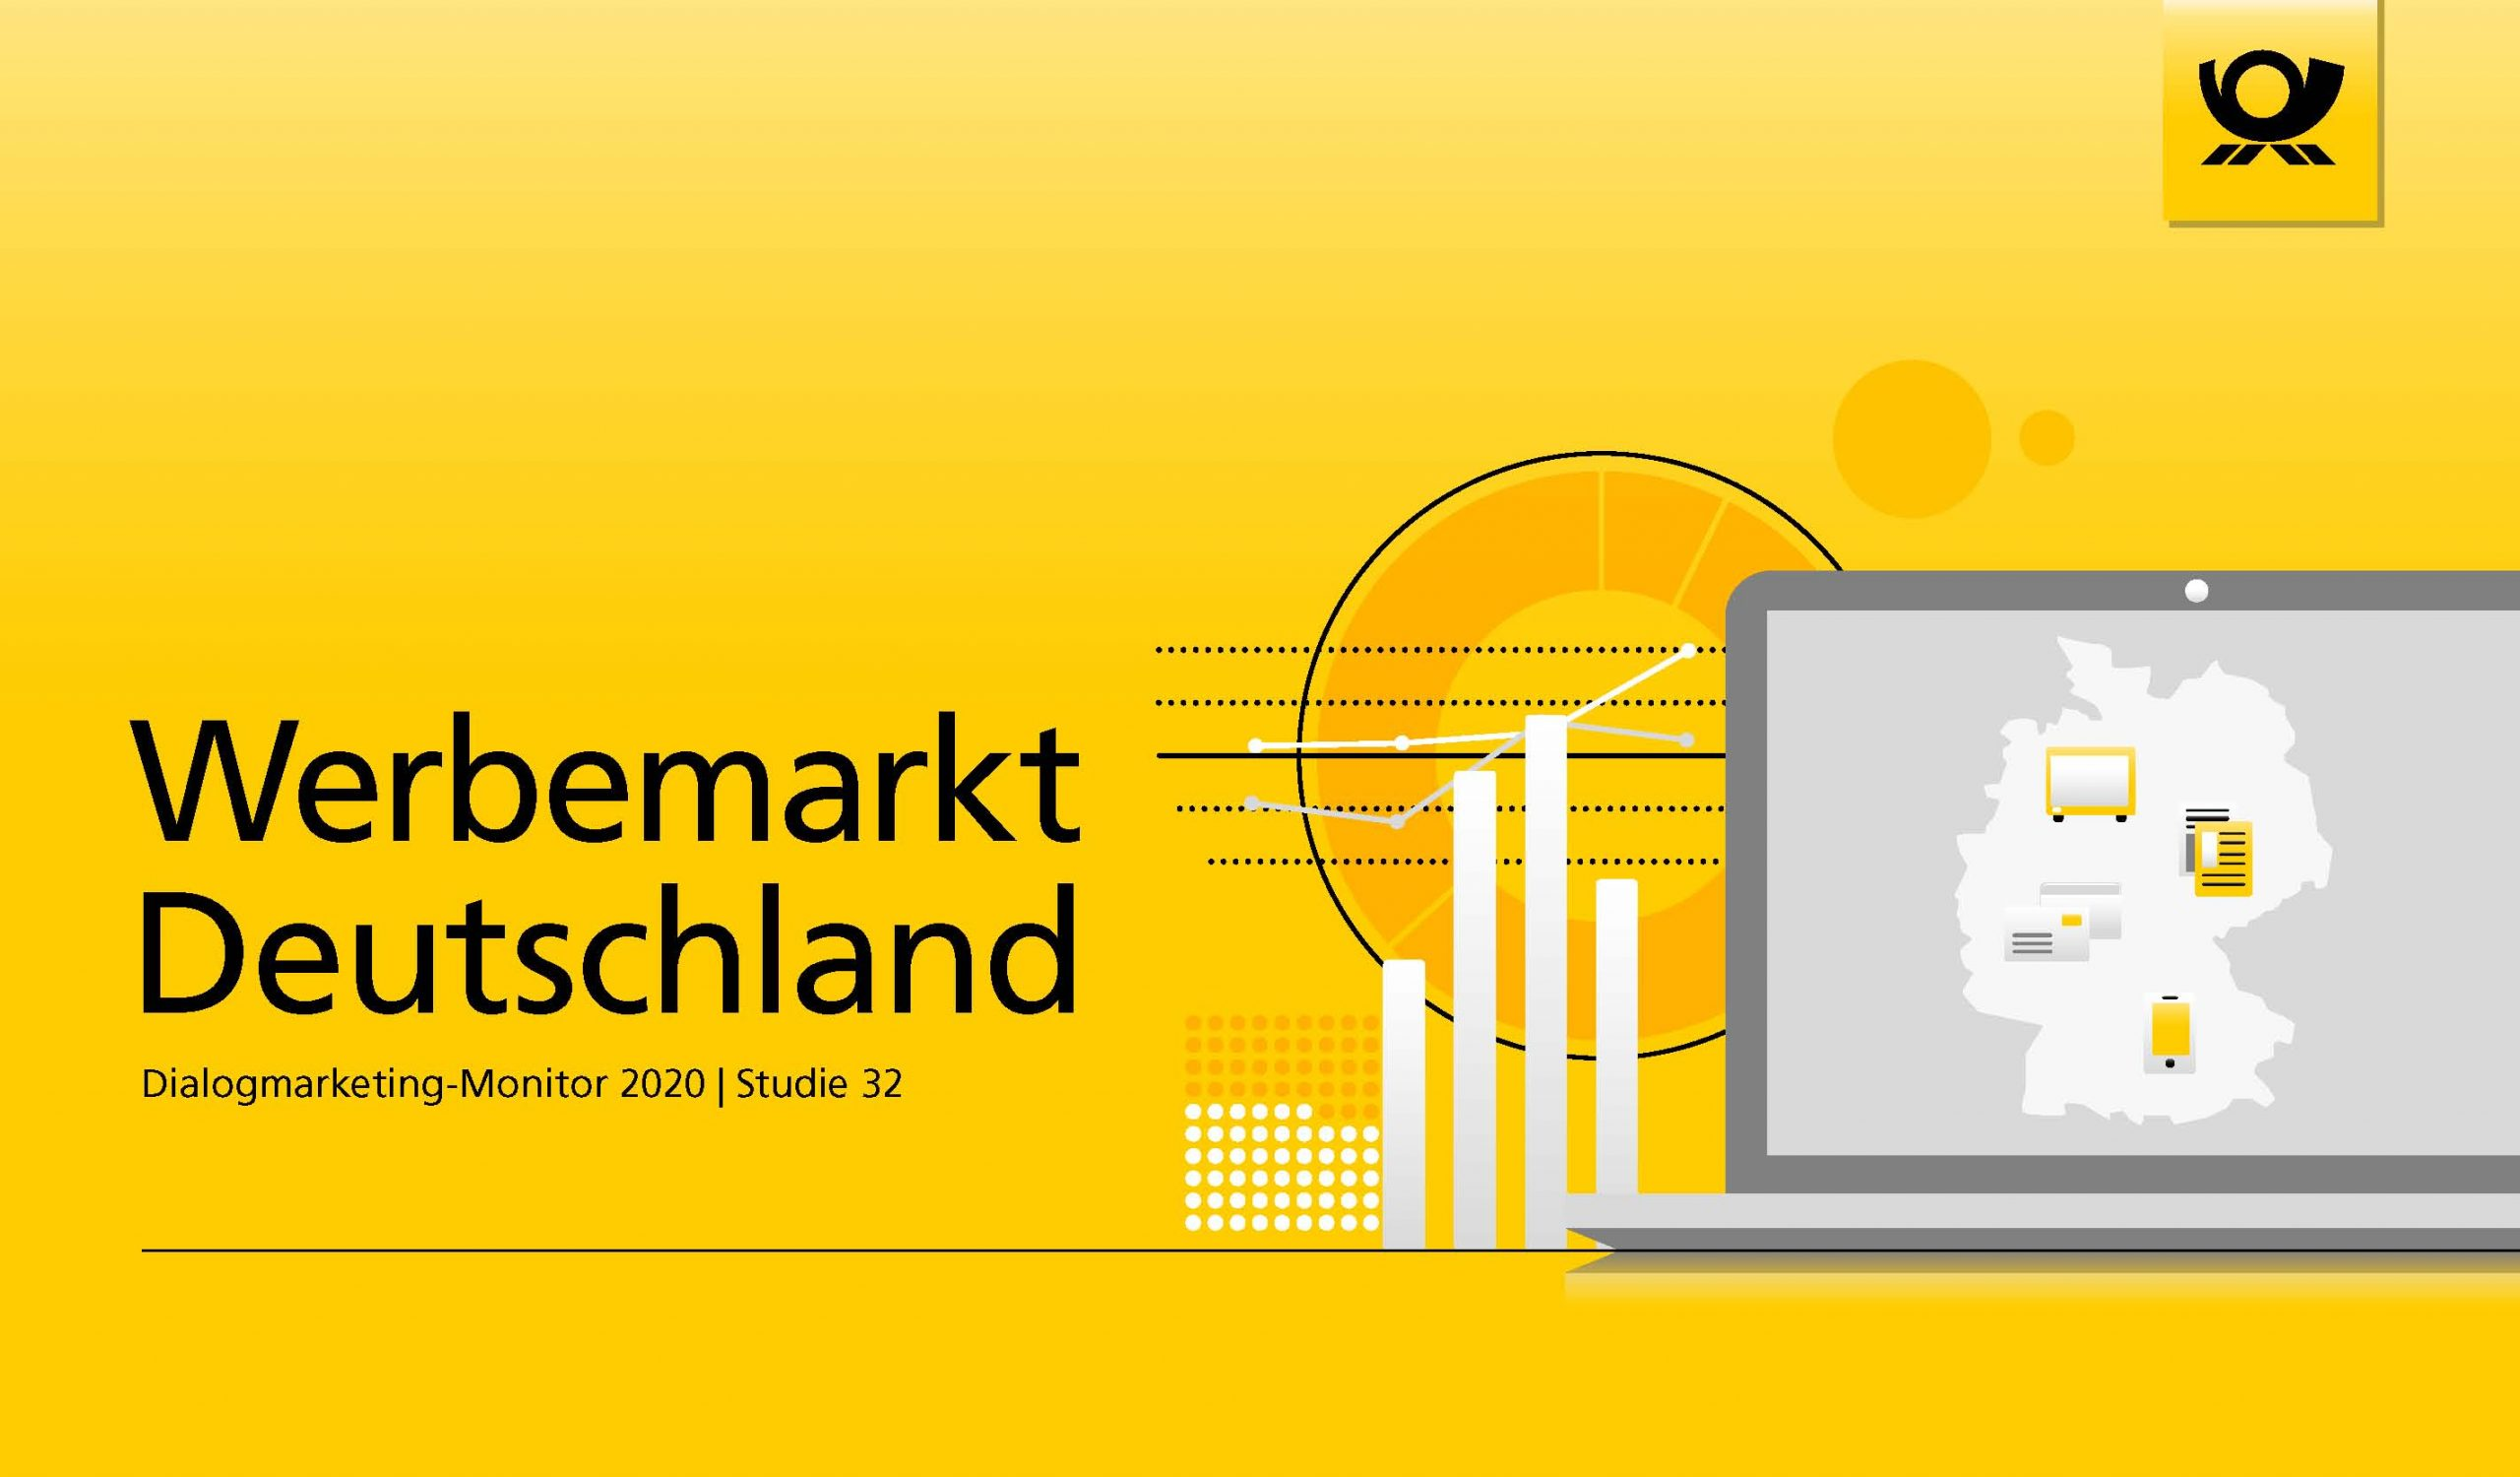 Werbemarkt Deutschland - Dialogmarketing Monitor 2020 Crossmediaworld, Stuttgart